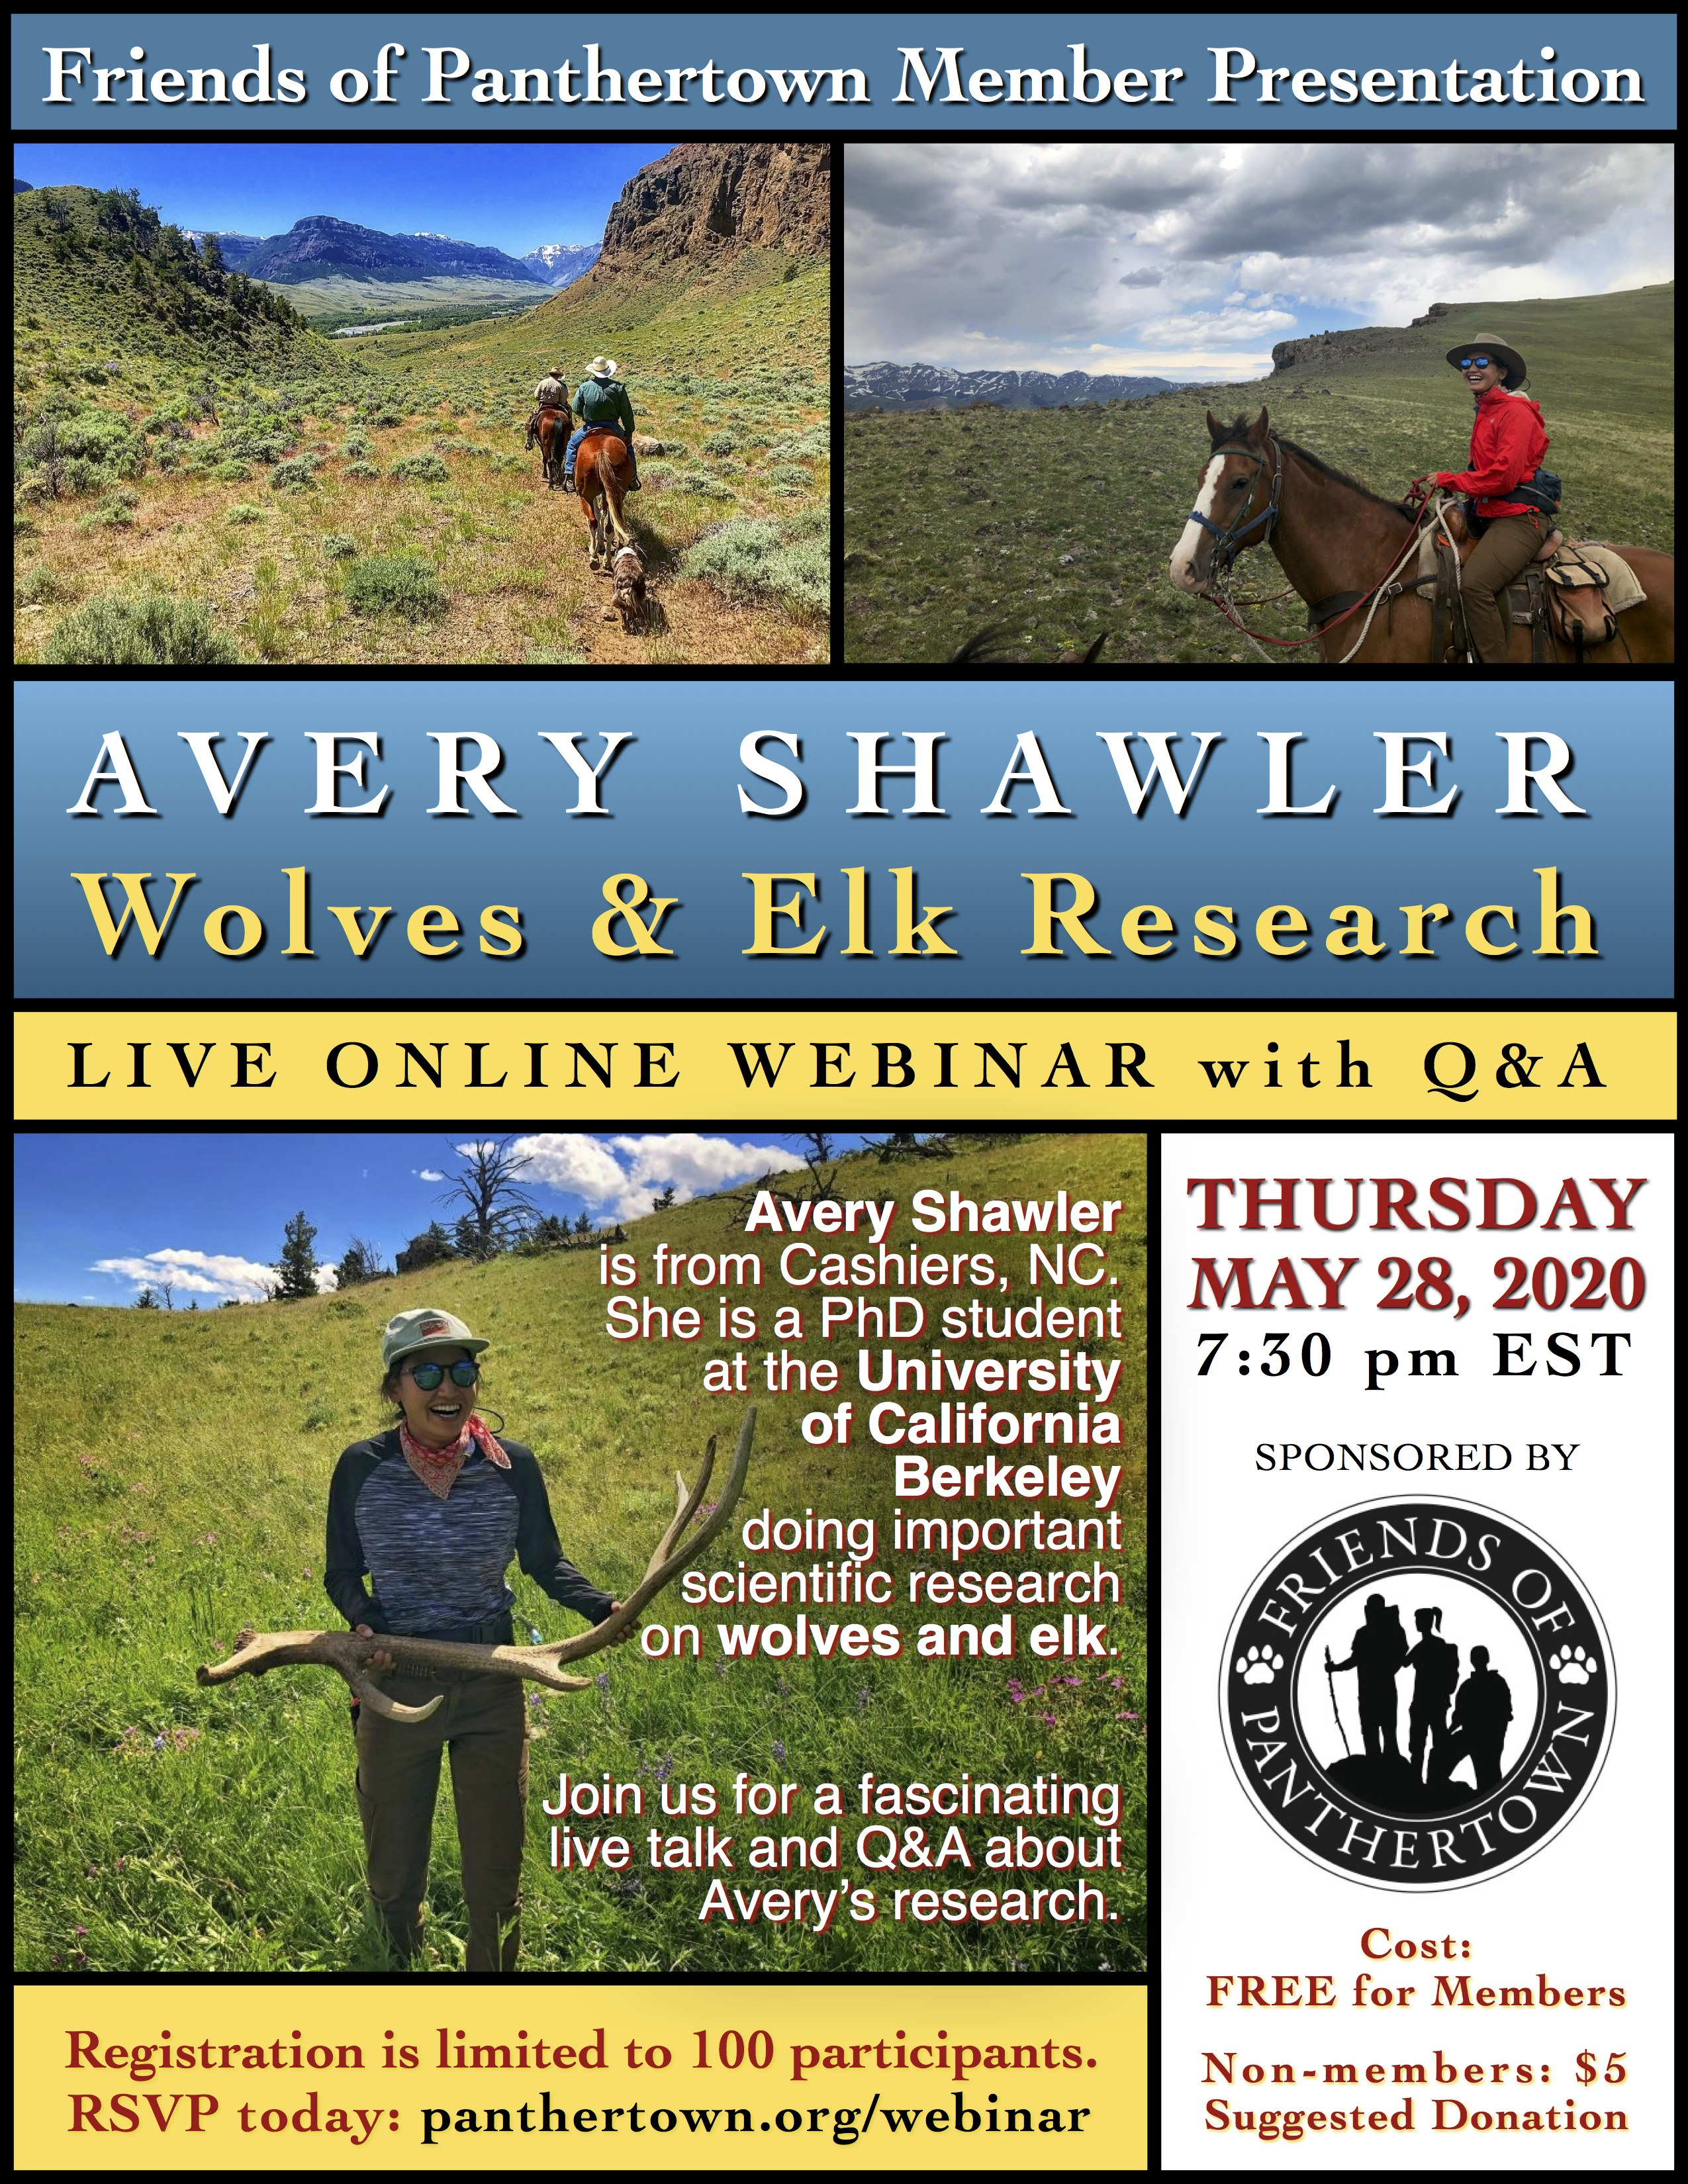 Avery Shawler Wolves & Elk Research Live Online Webinar with Q&A Thursday May 28, 2020 at 7:30 pm EST sponsored by Friends of Panthertown panthertown.org/webinar